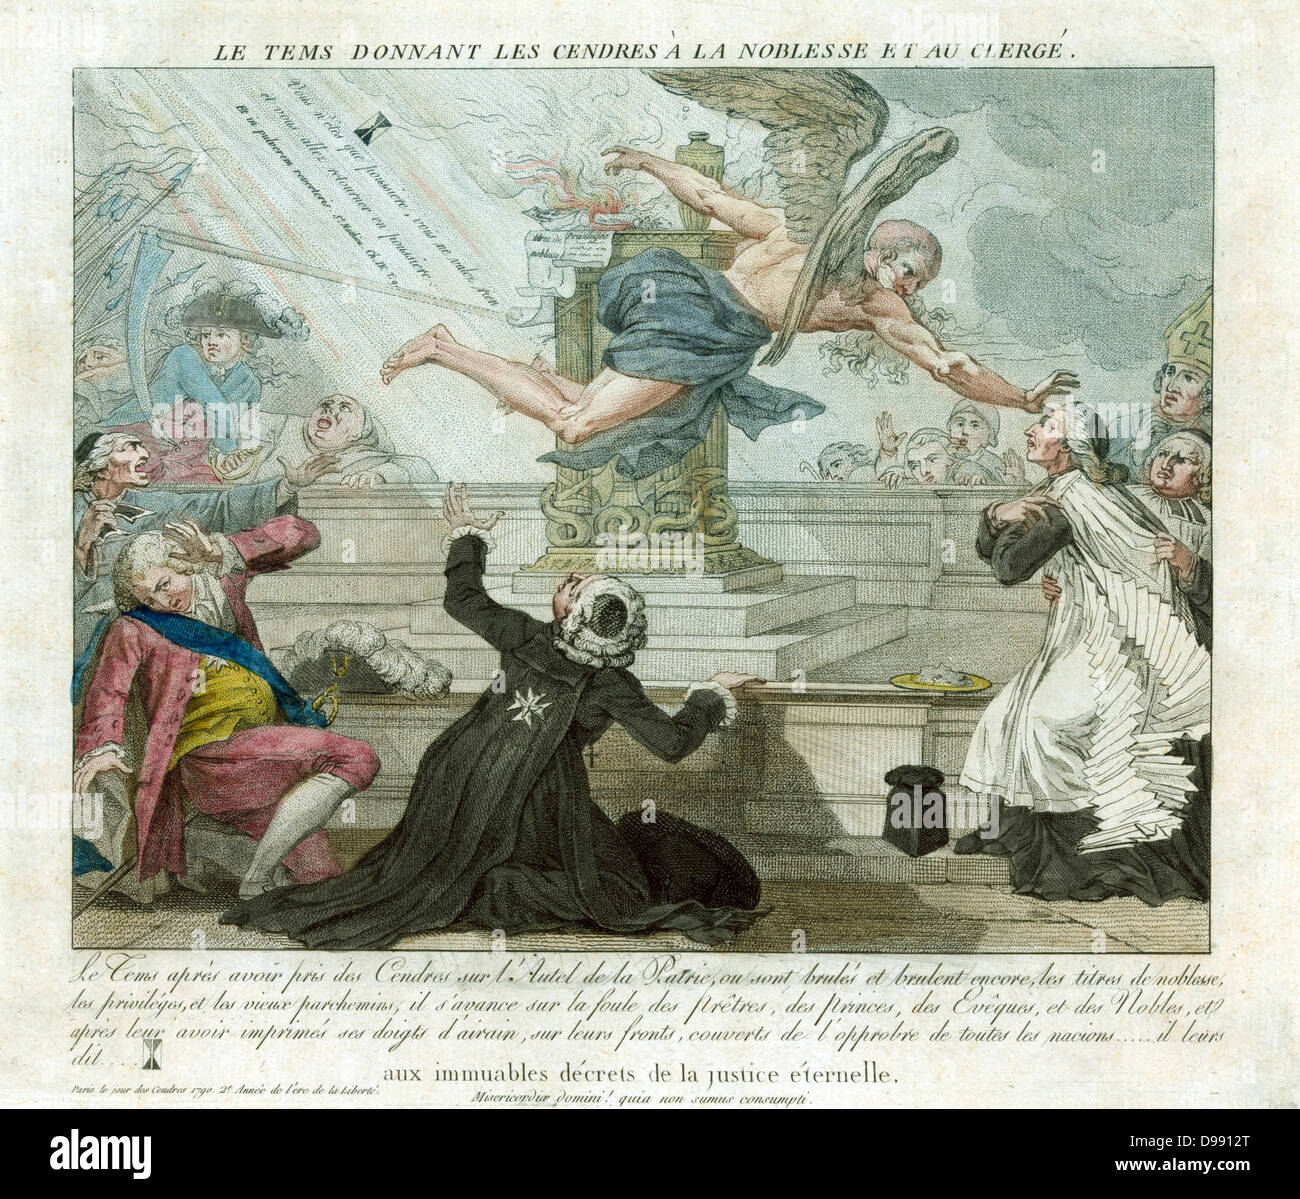 French Revolution: Father Time flying past altar on which the privileges of the nobility and clergy are being burned. - Stock Image